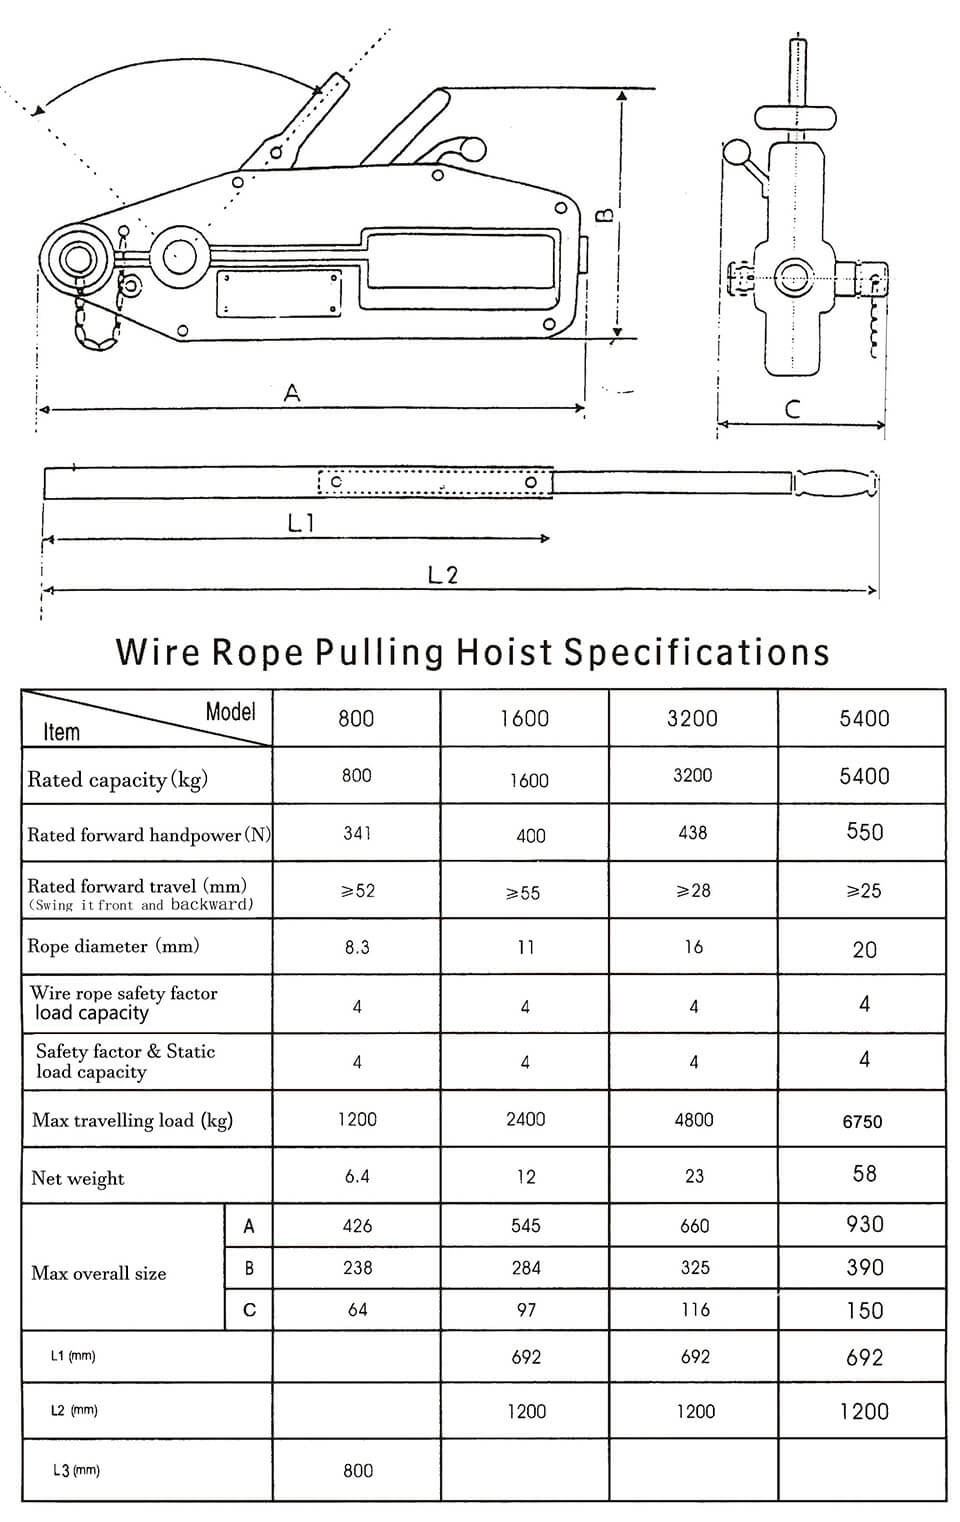 Tirforwire rope pulling hoist